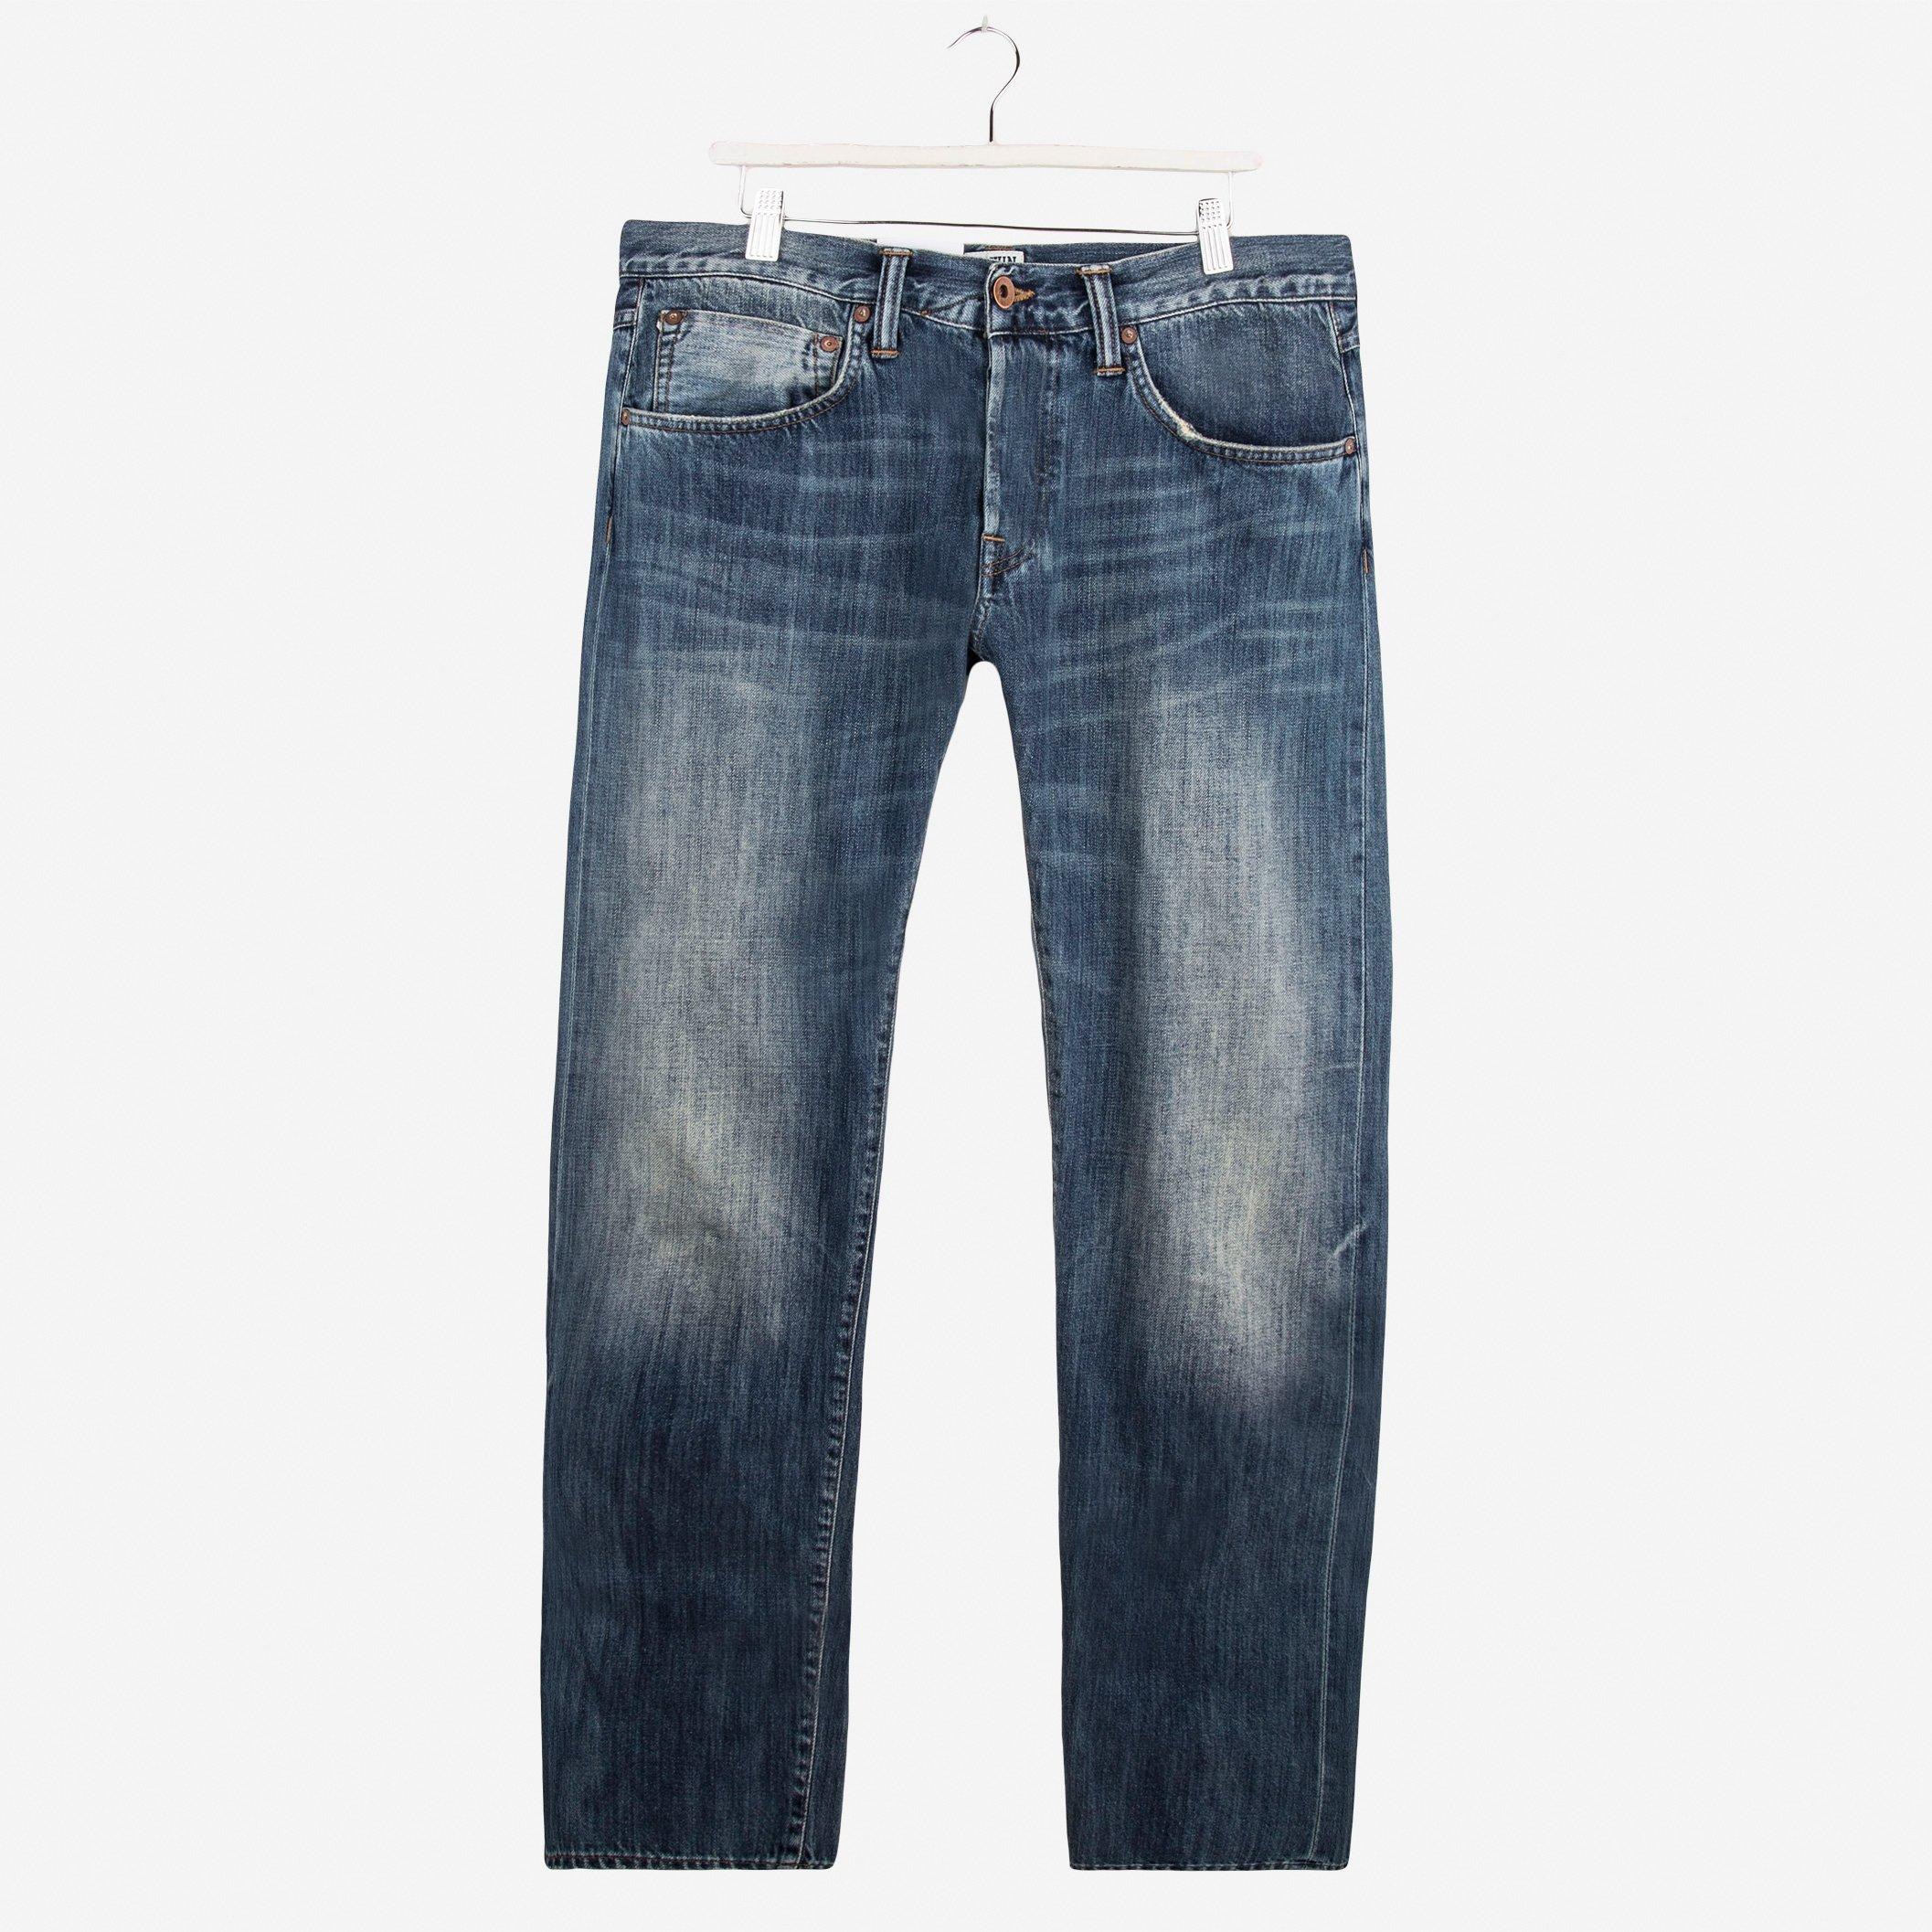 Edwin ED-55 Relaxed Tapered White Listed Denim Mid Sifted